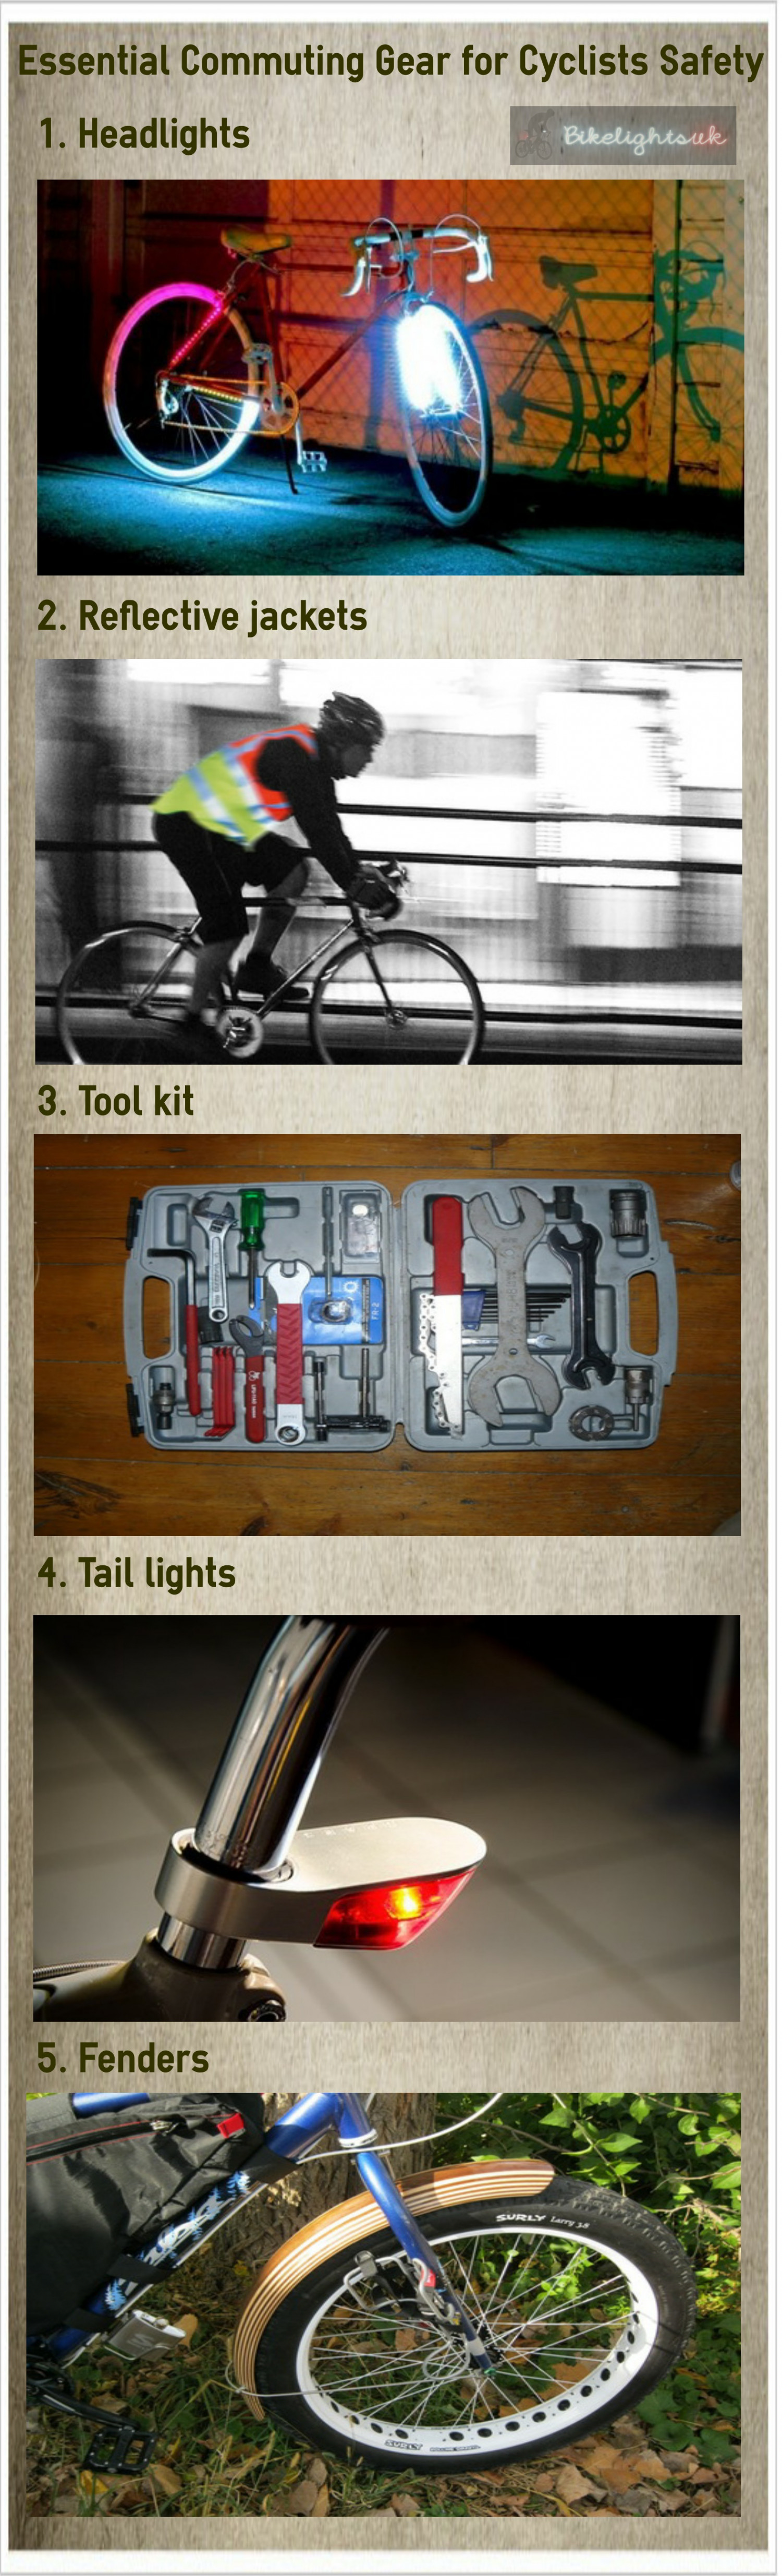 Essential Commuting Gear for Cyclists Safety Infographic